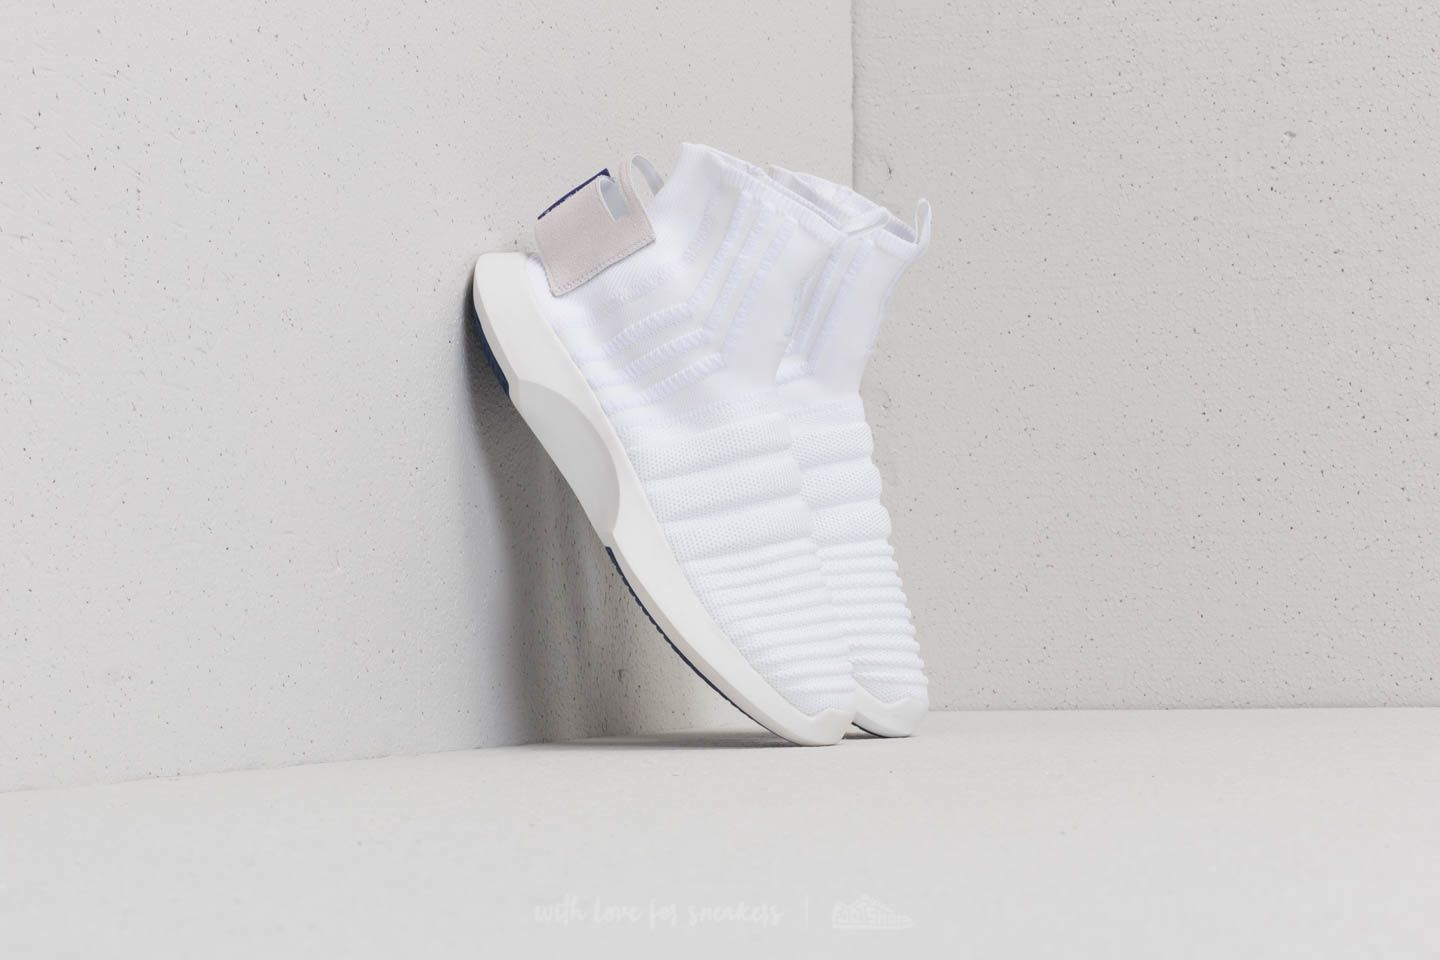 adidas Crazy 1 ADV Sock Primeknit (ASW) Ftw White Ftw White Real Purple | Footshop